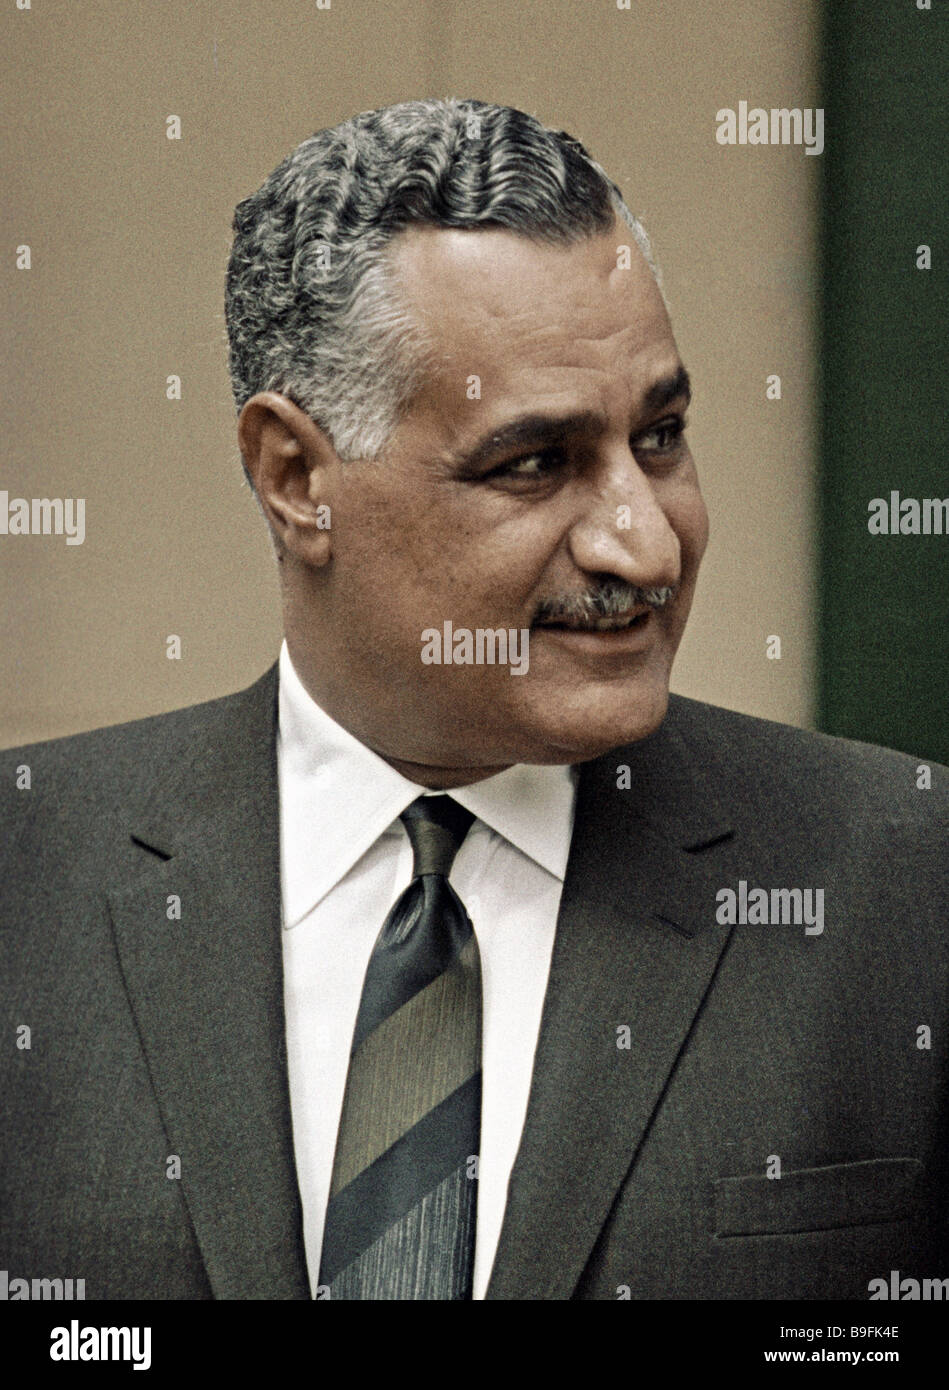 Gamal Abdel Nasser President of the United Arab Republic - Stock Image